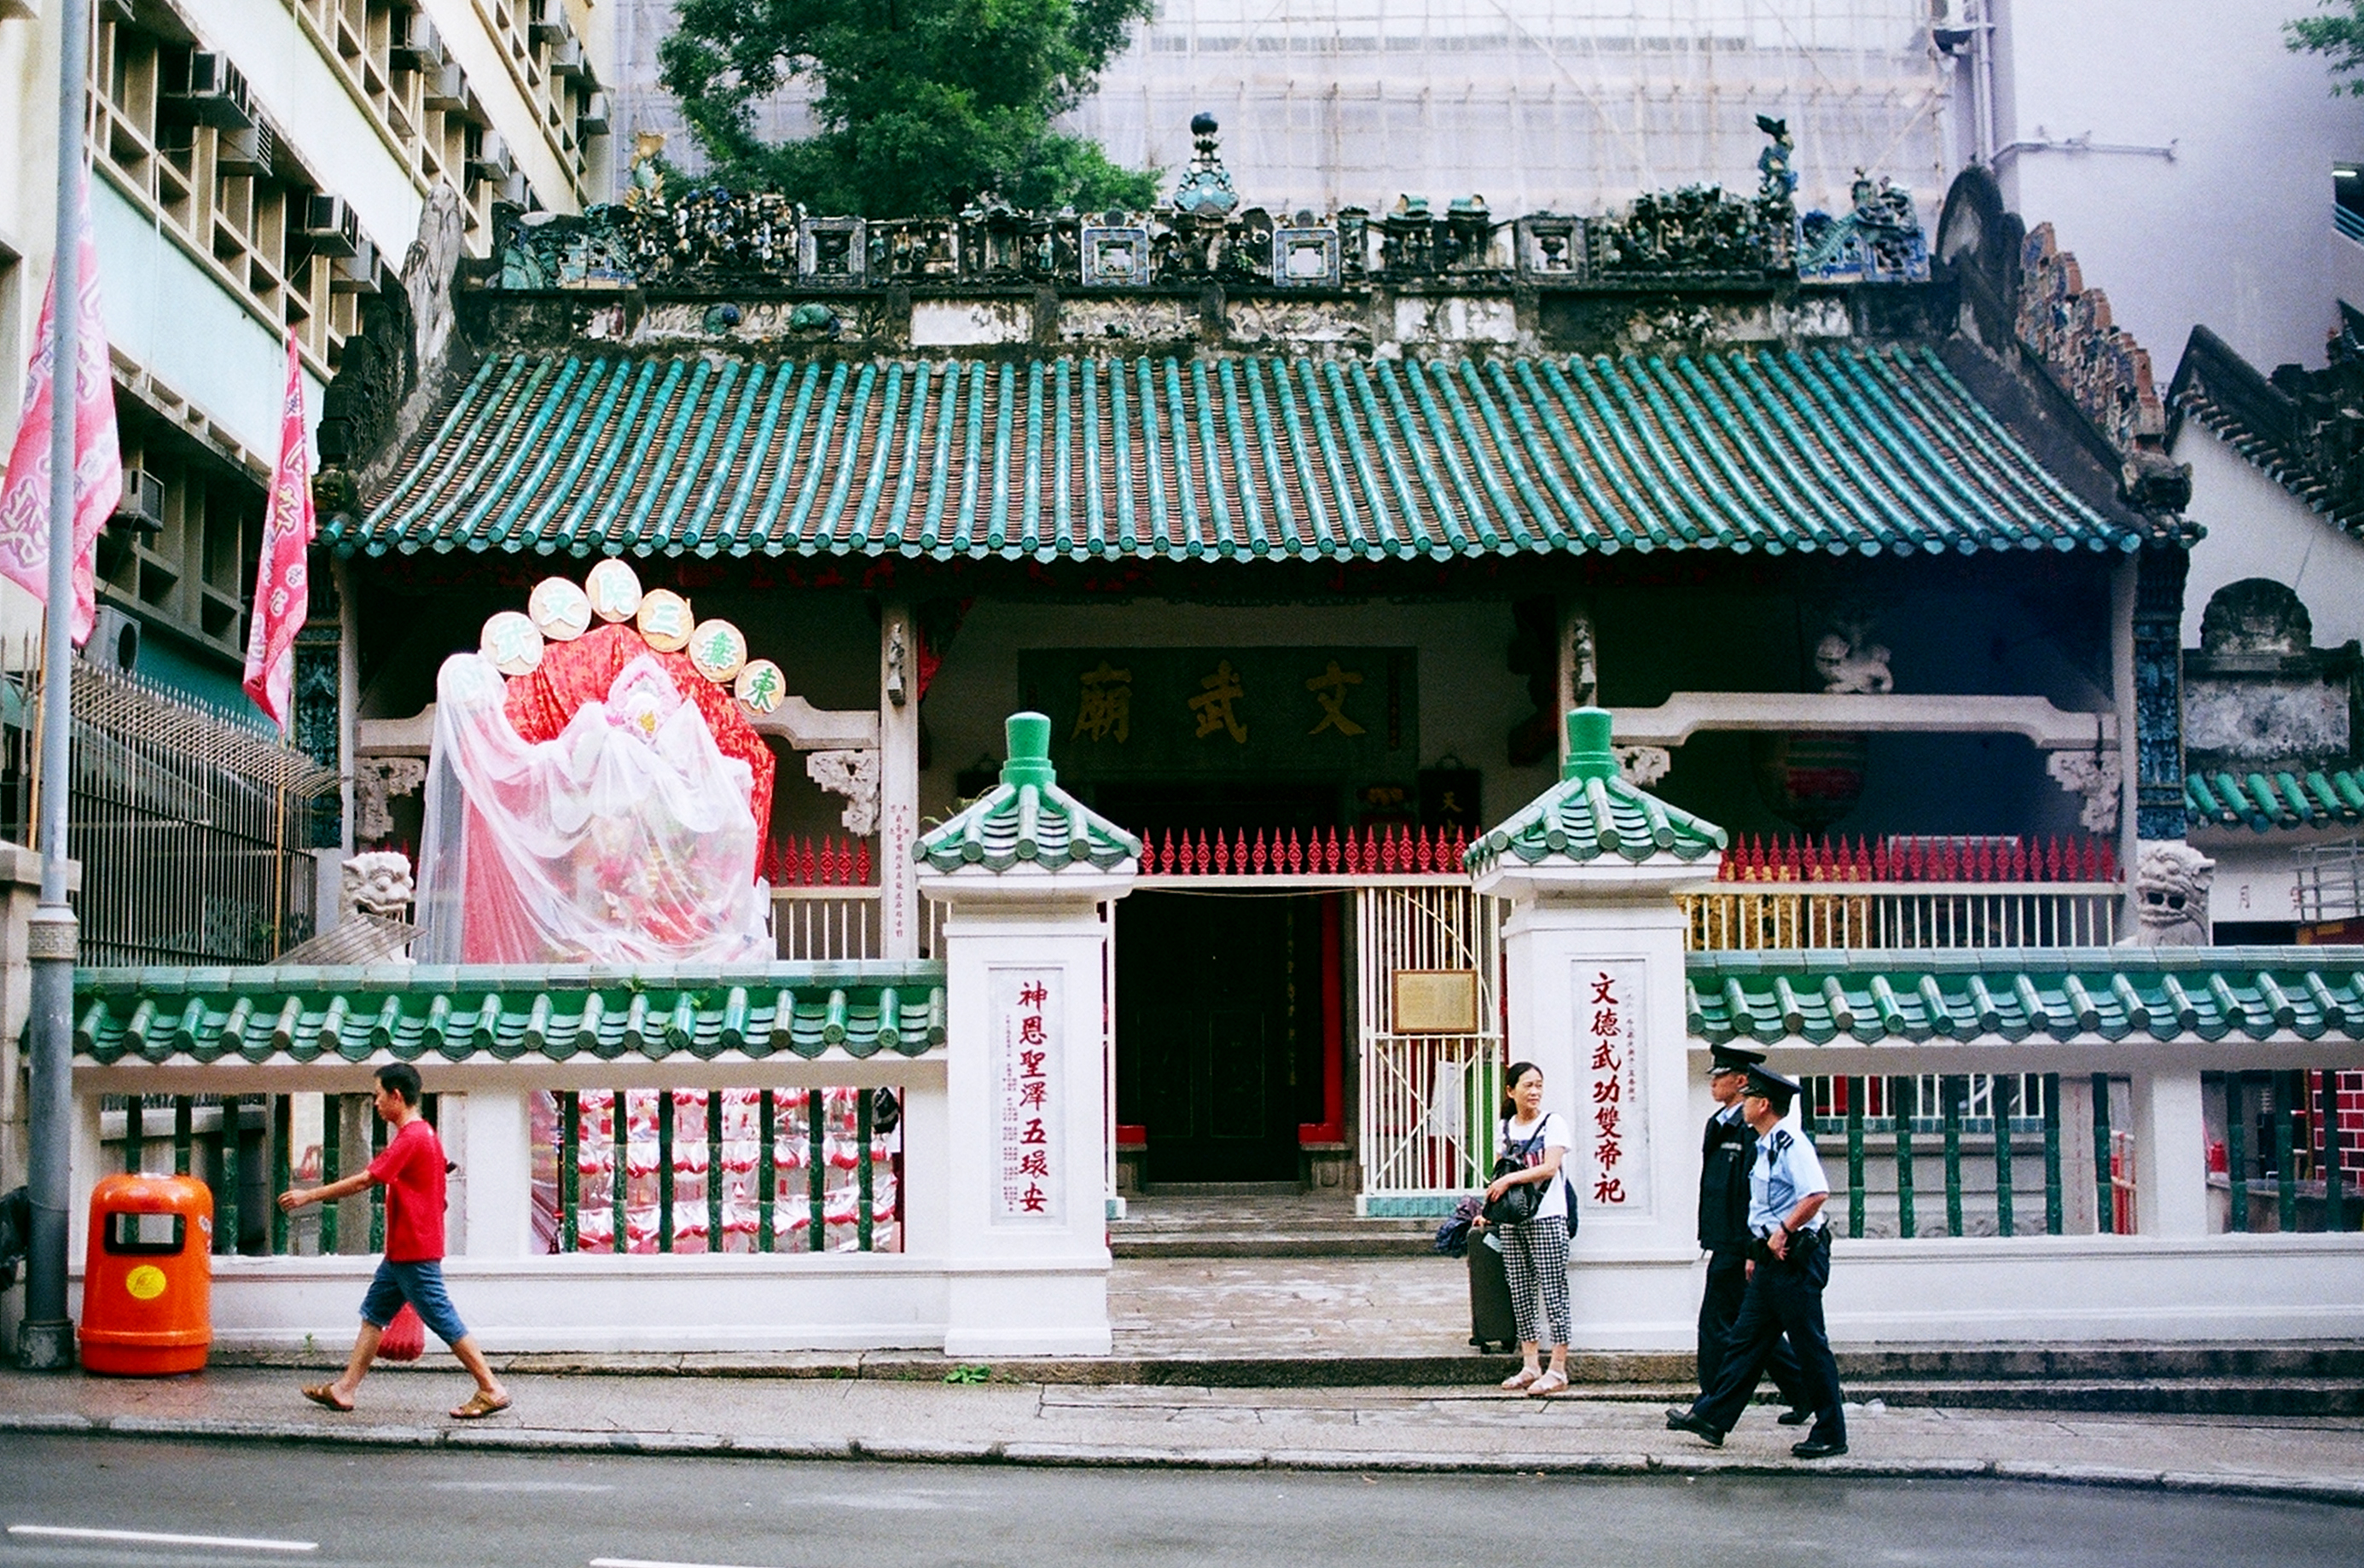 This historical landmark is one of the only authentically standing temples in the Central district